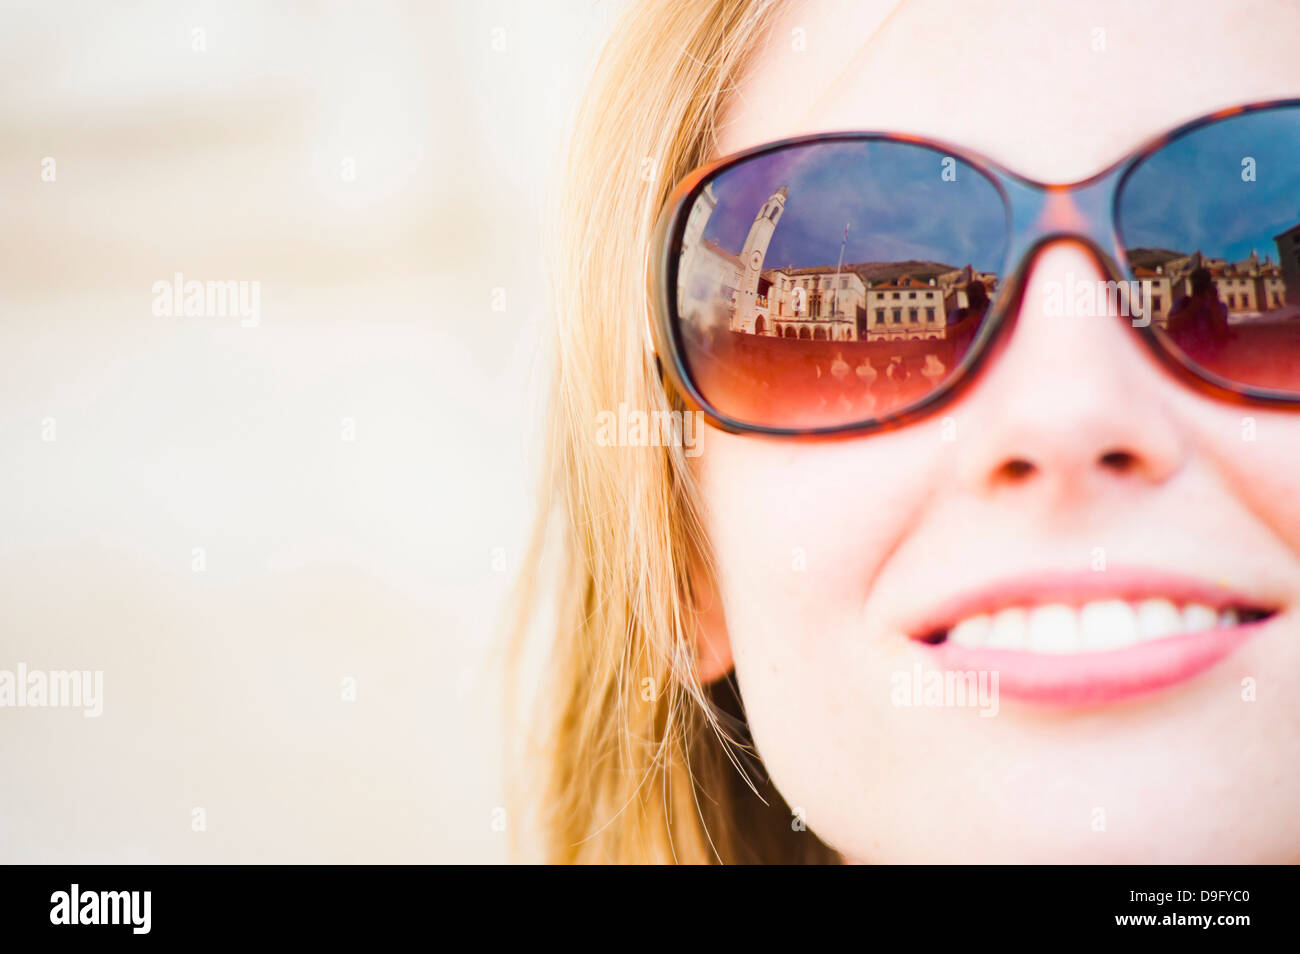 Dubrovnik City Bell Tower reflected in a tourist's sunglasses, Dubrovnik, Dalmatia, Croatia - Stock Image